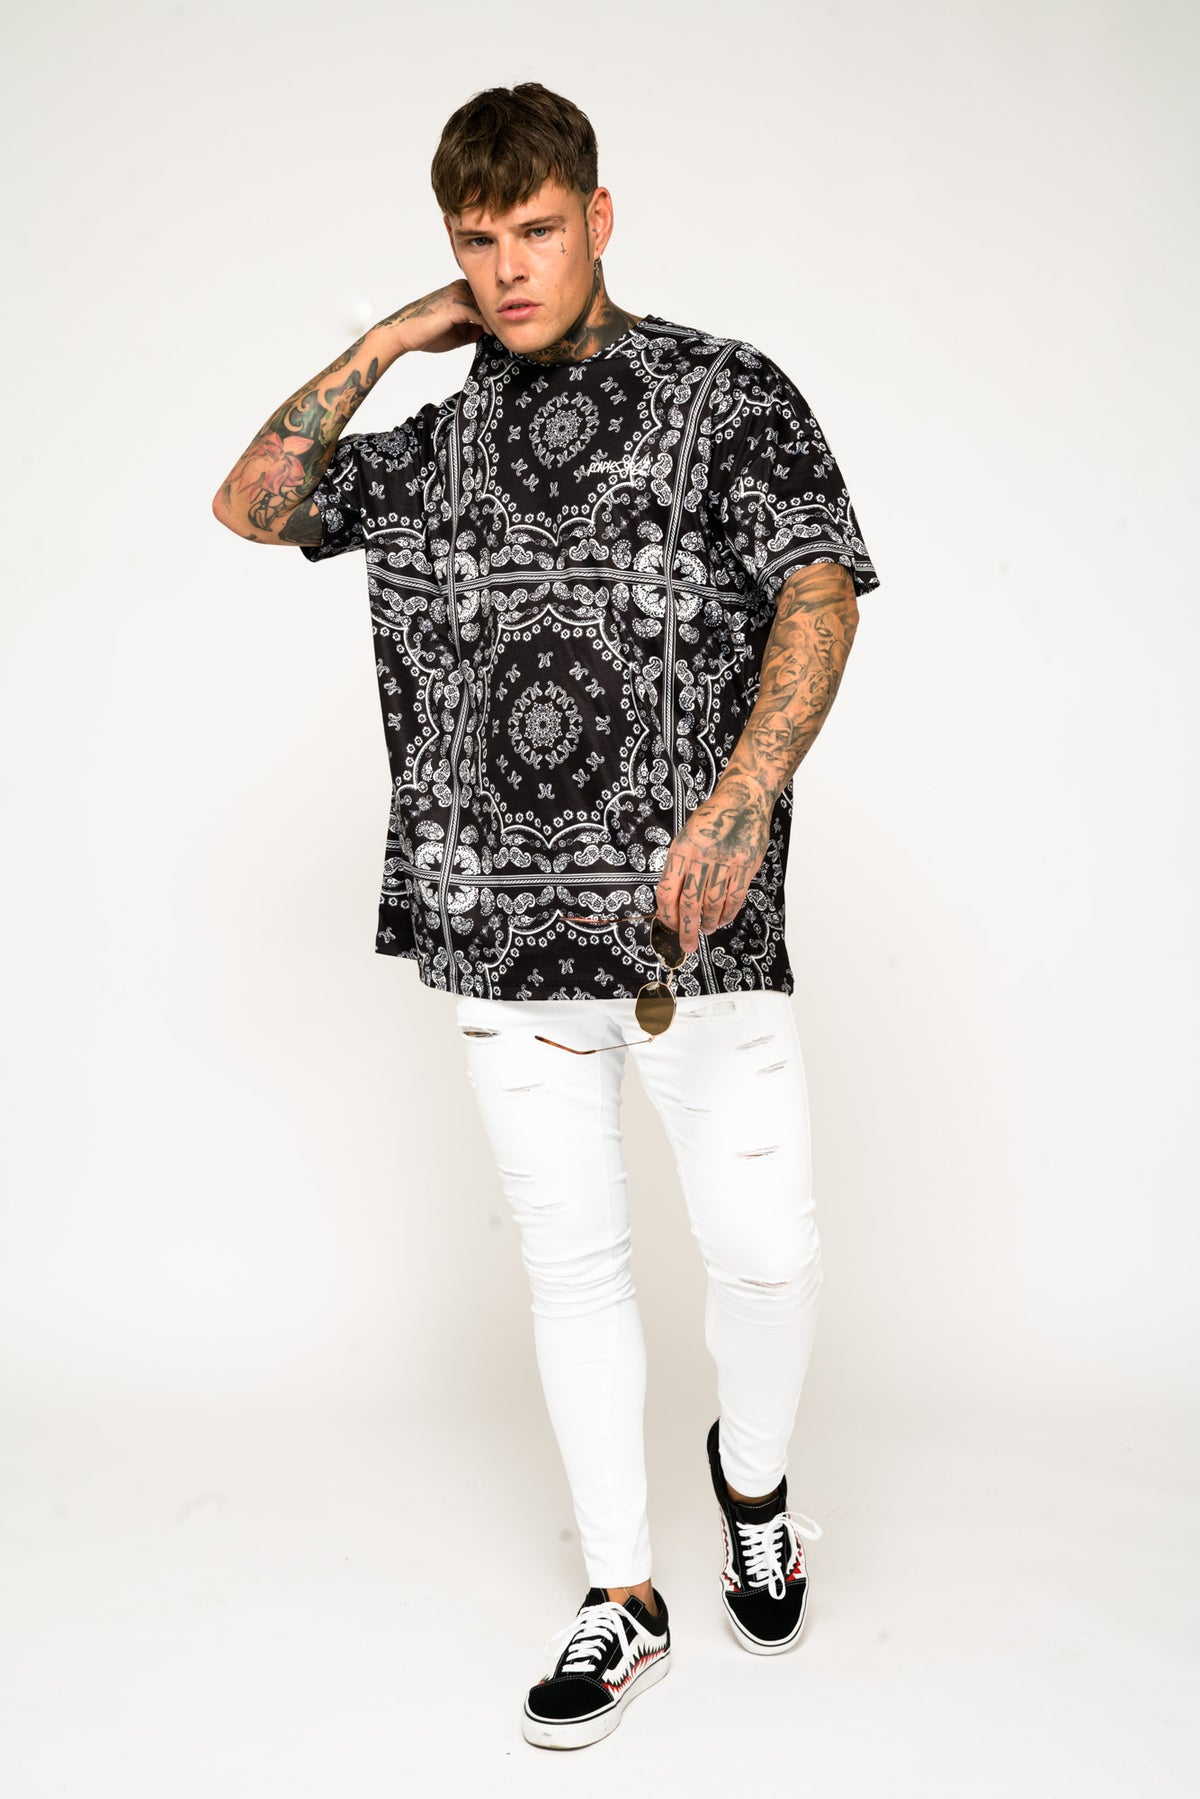 Roadies of 66 - Oversized T-Shirt in Bandana Print